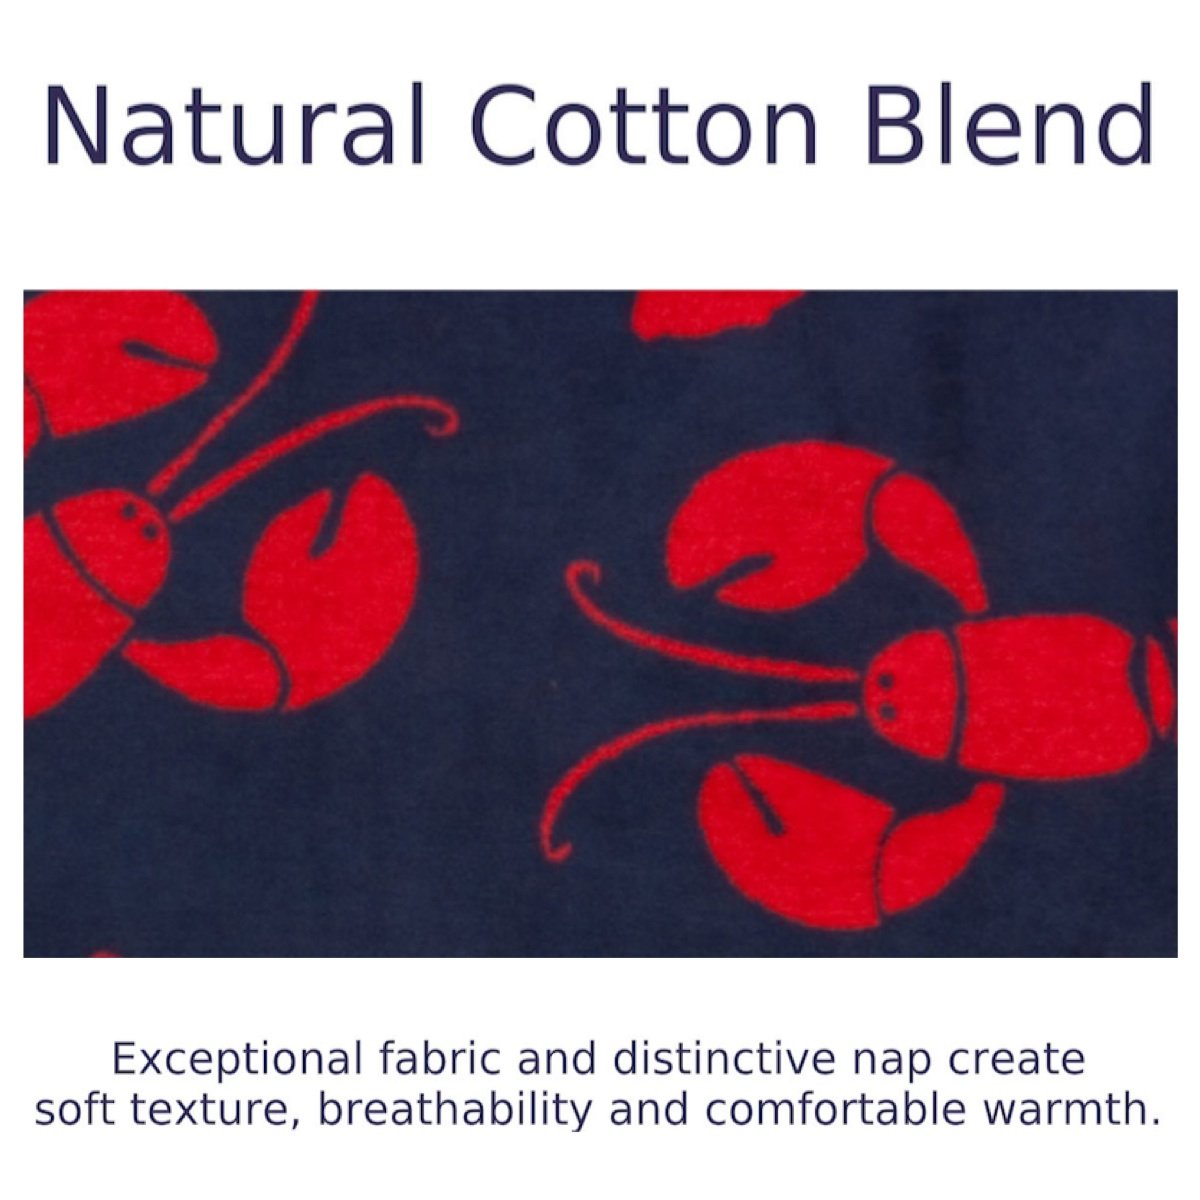 """ChappyWrap Anchors and Knots- Red 60/"""" x 80/"""" Throw Blanket Made in Germany Reversible Jacquard Woven Design Natural Cotton Blend Coastal Living Collection"""